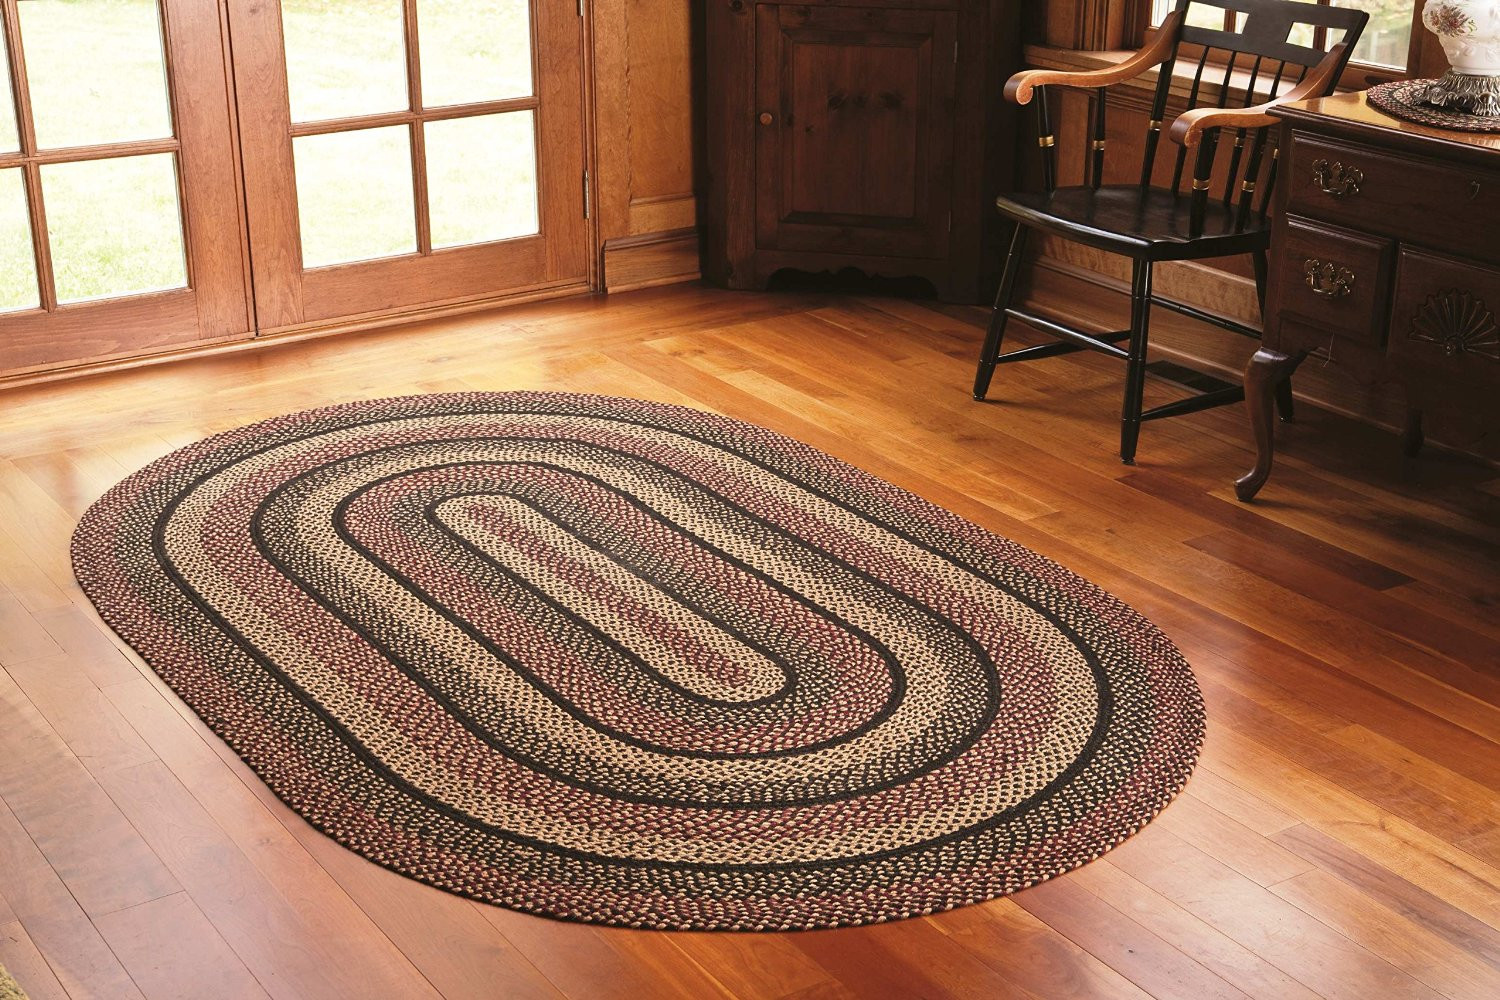 amazon hardwood flooring toronto of woven area rug rugs ideas inside braided area rugs oval designforlifeden within ideas stylish home decor with yellow rug large washable living